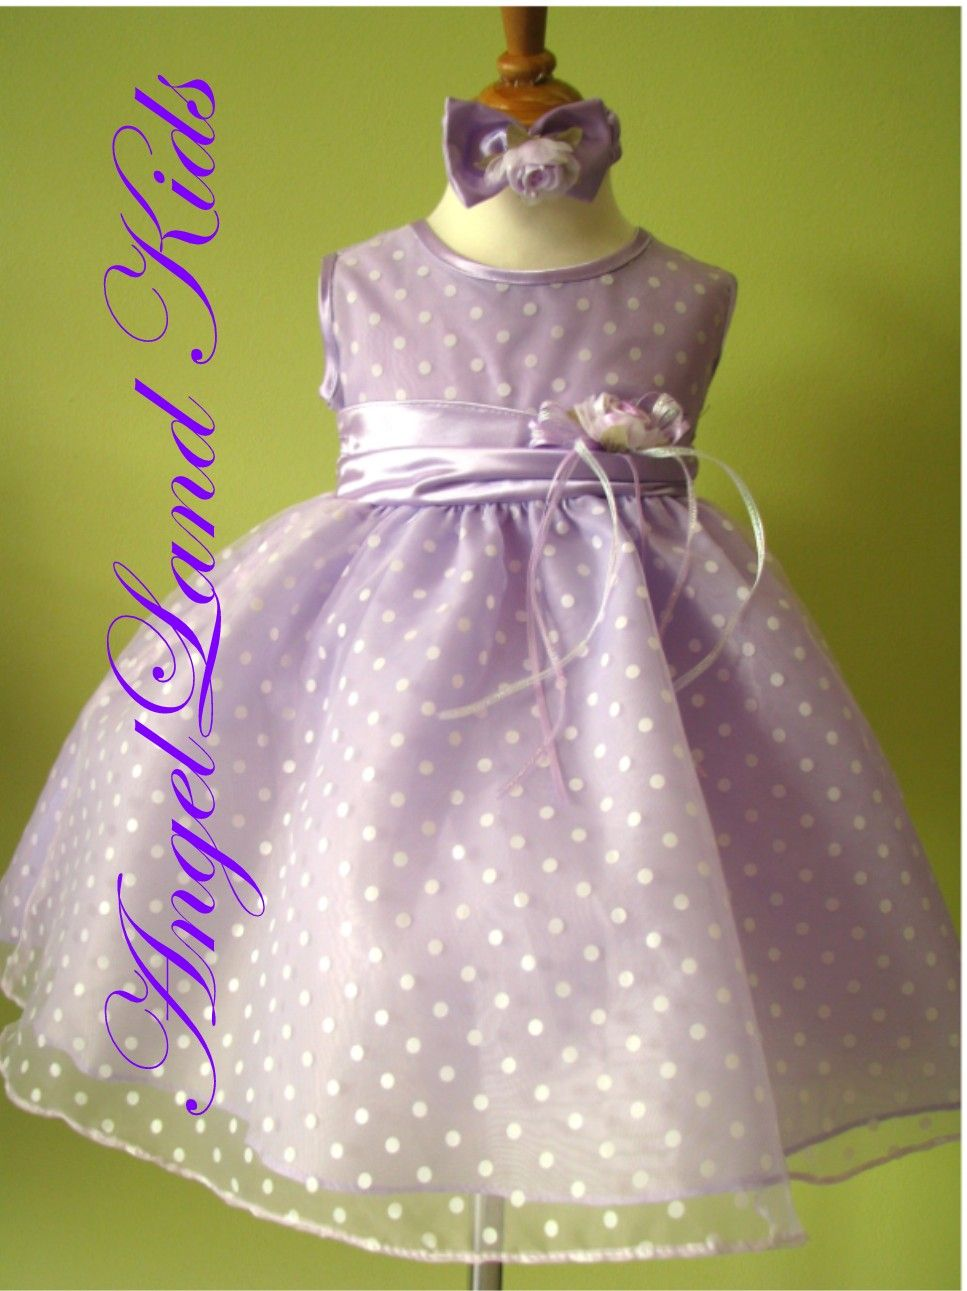 dressy new born dresses | Affordable Baby Easter Dresses ...